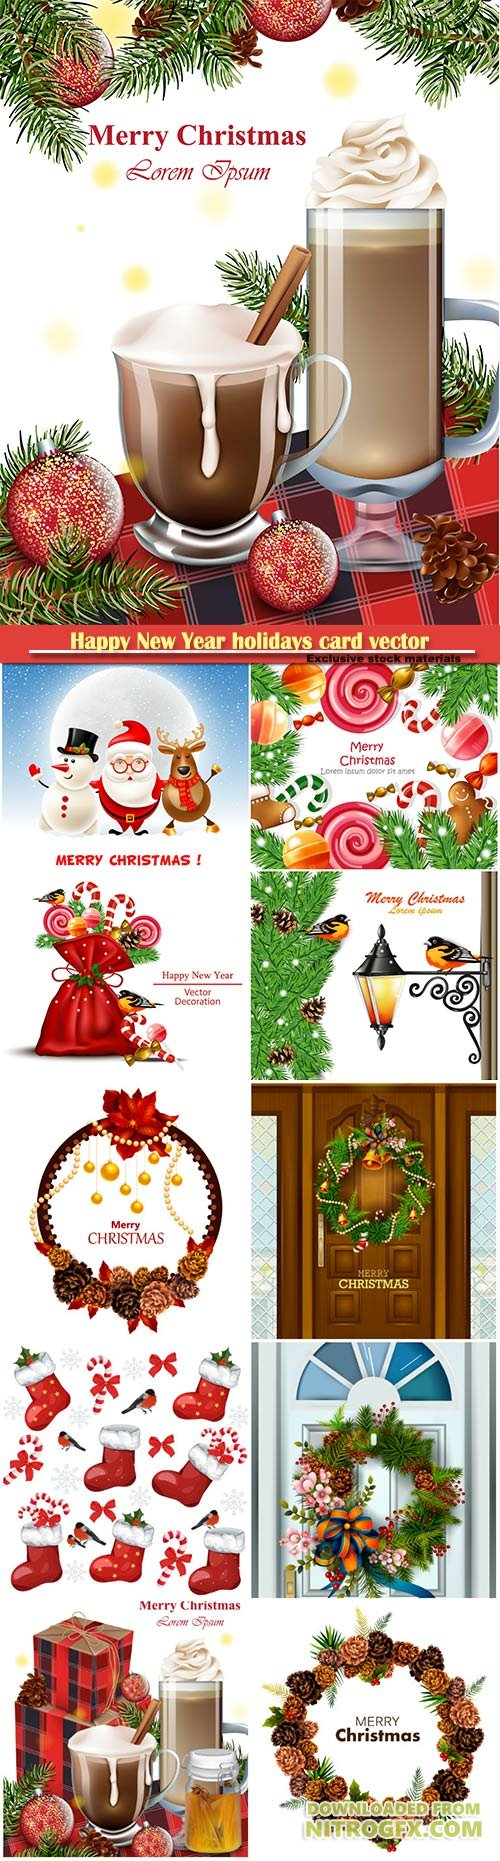 Happy New Year holidays card vector background